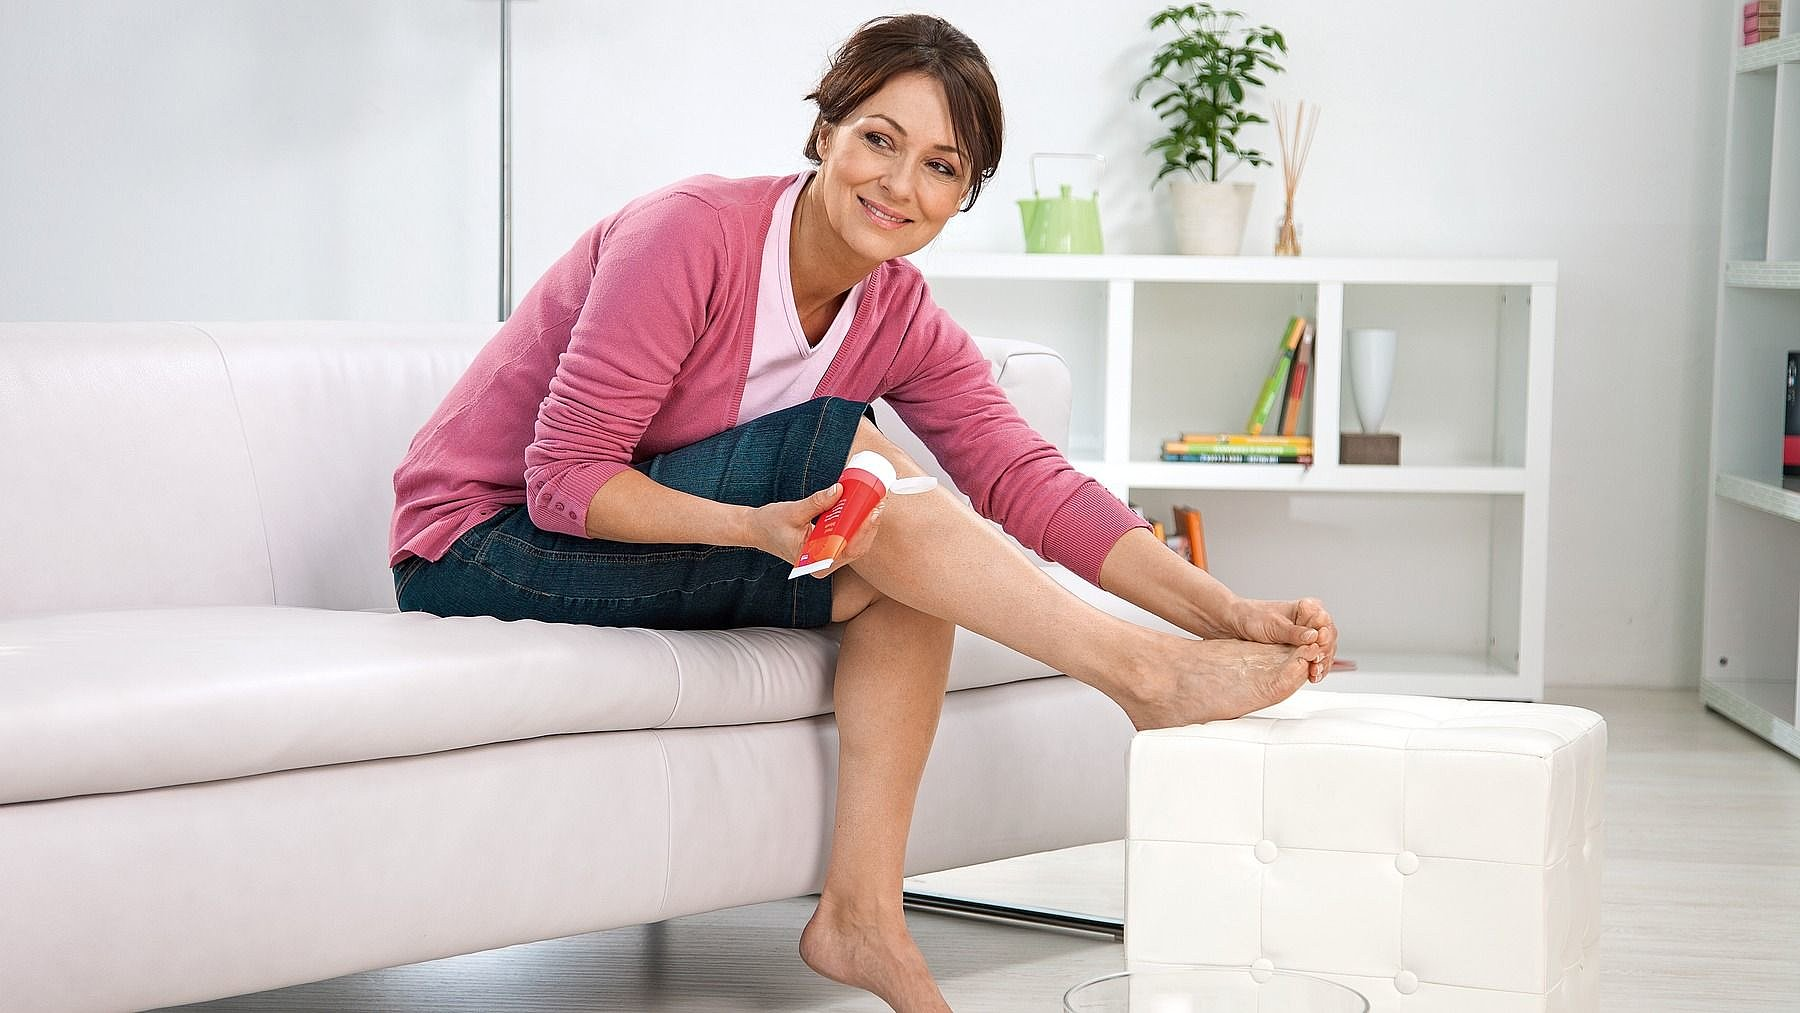 Medi foot care products